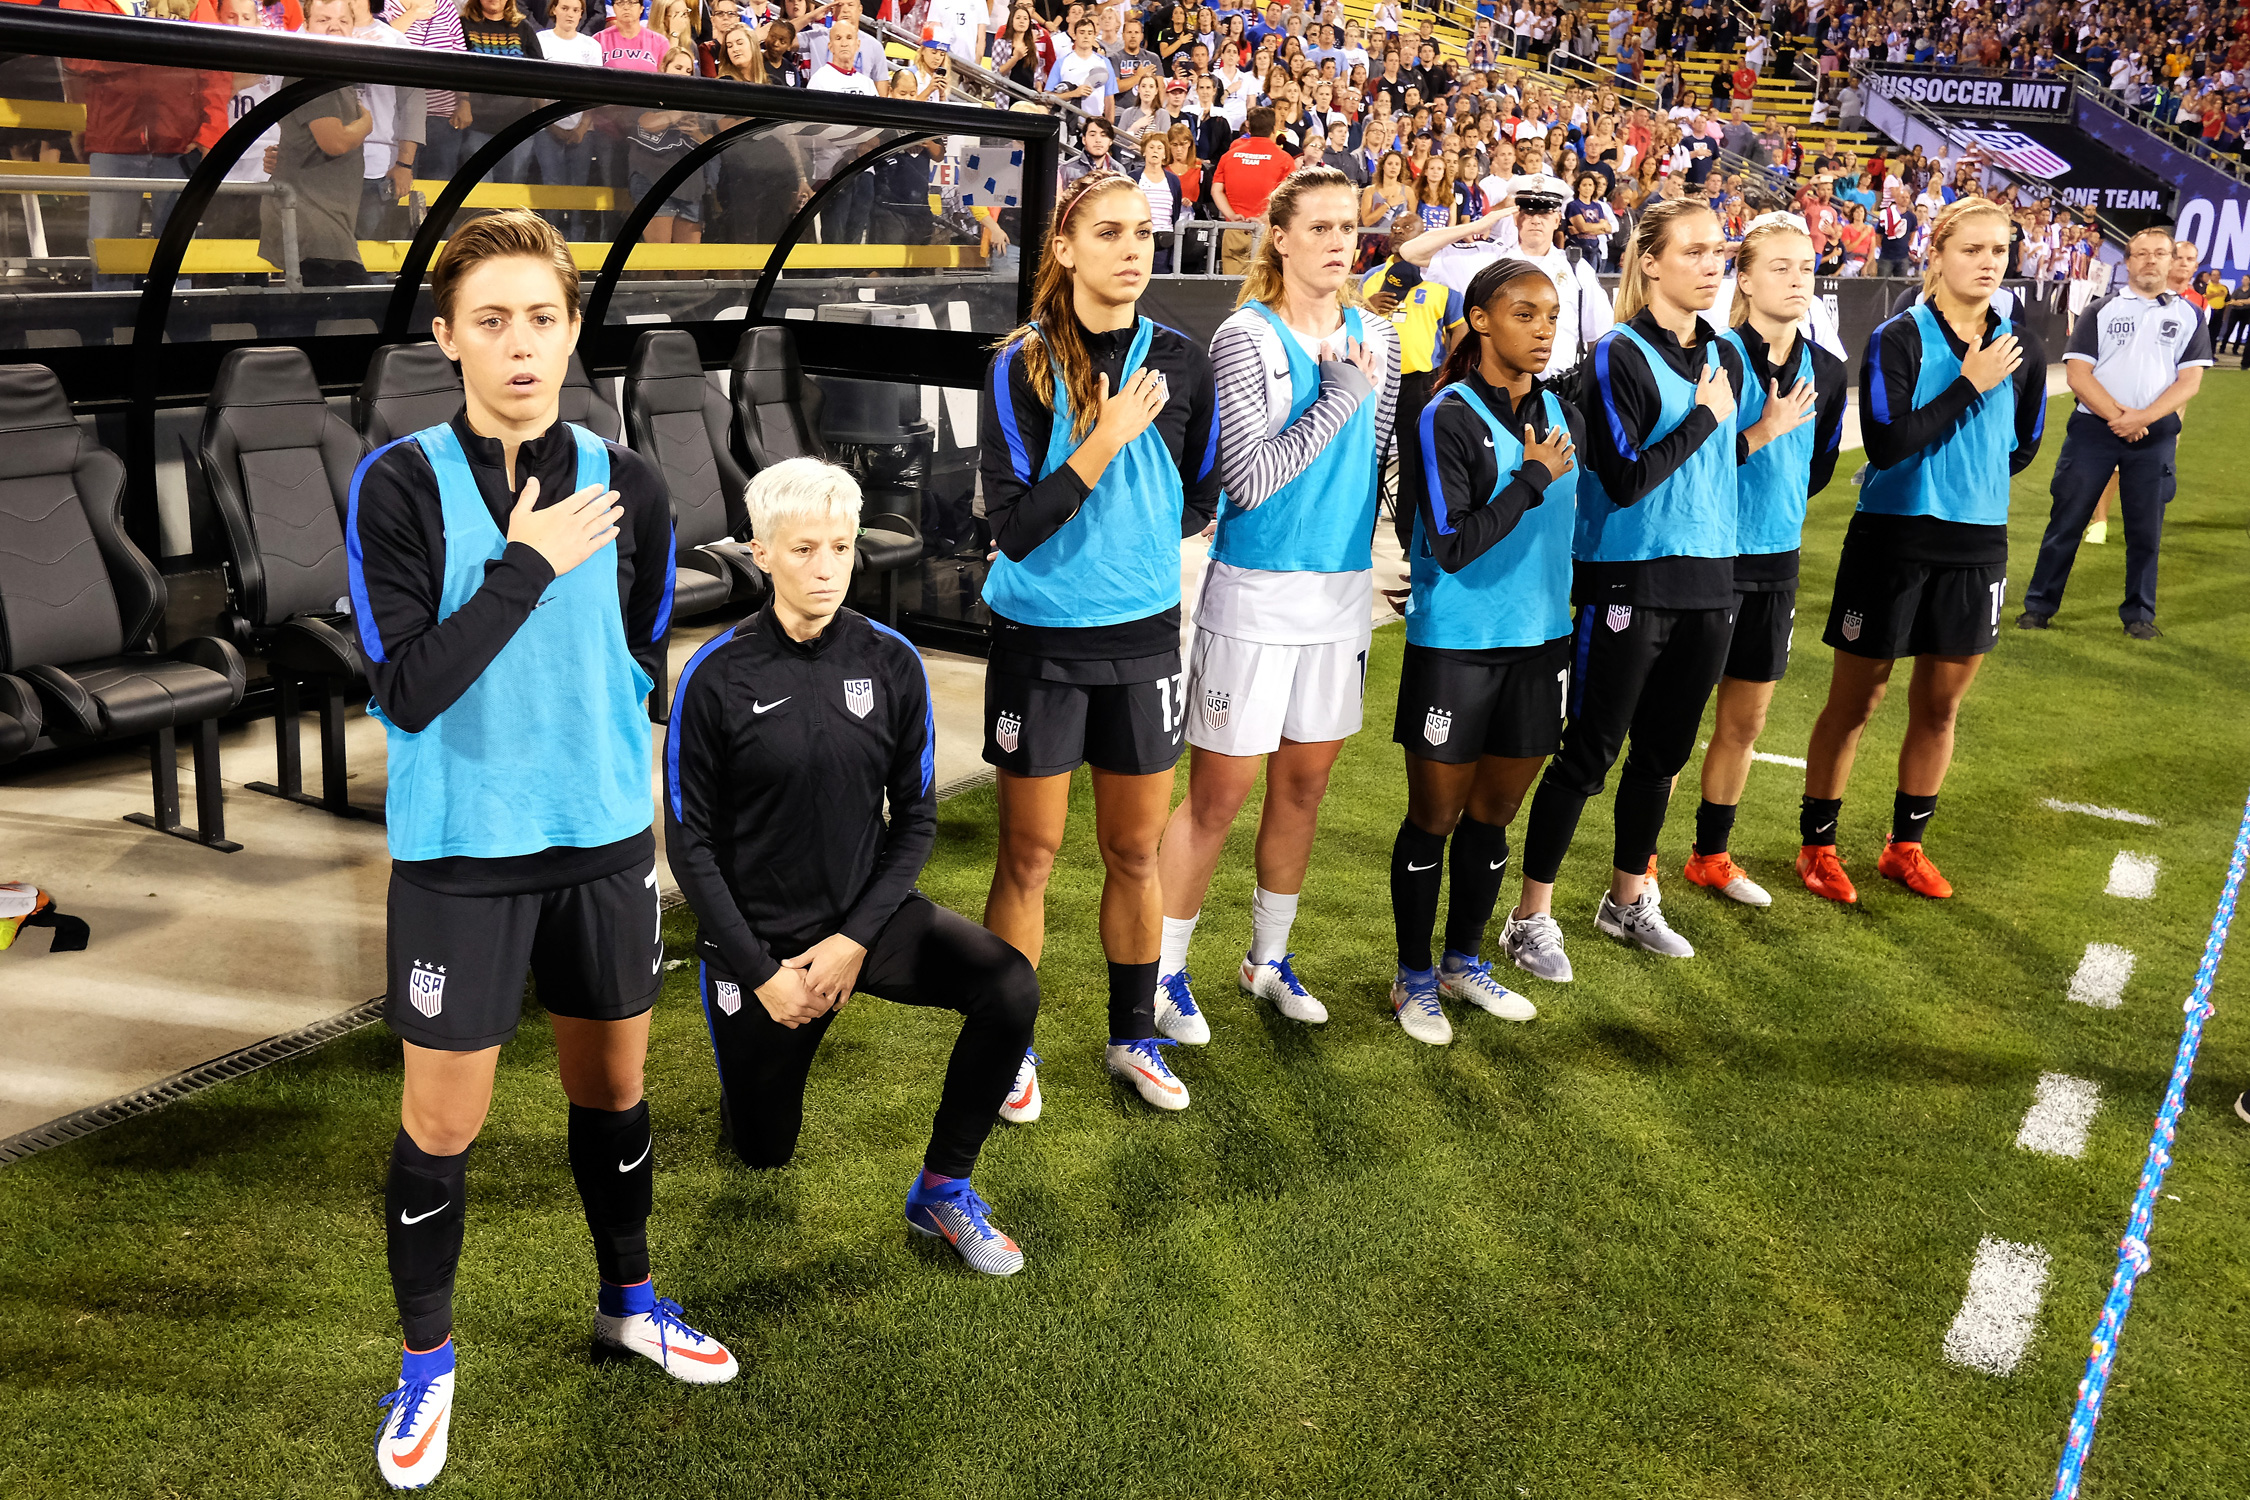 Megan Rapinoe kneels for the national anthem ahead of the U.S. women's national team's match vs. Thailand, continuing her public protest in line with that of San Francisco 49ers quarterback Colin Kaepernick.